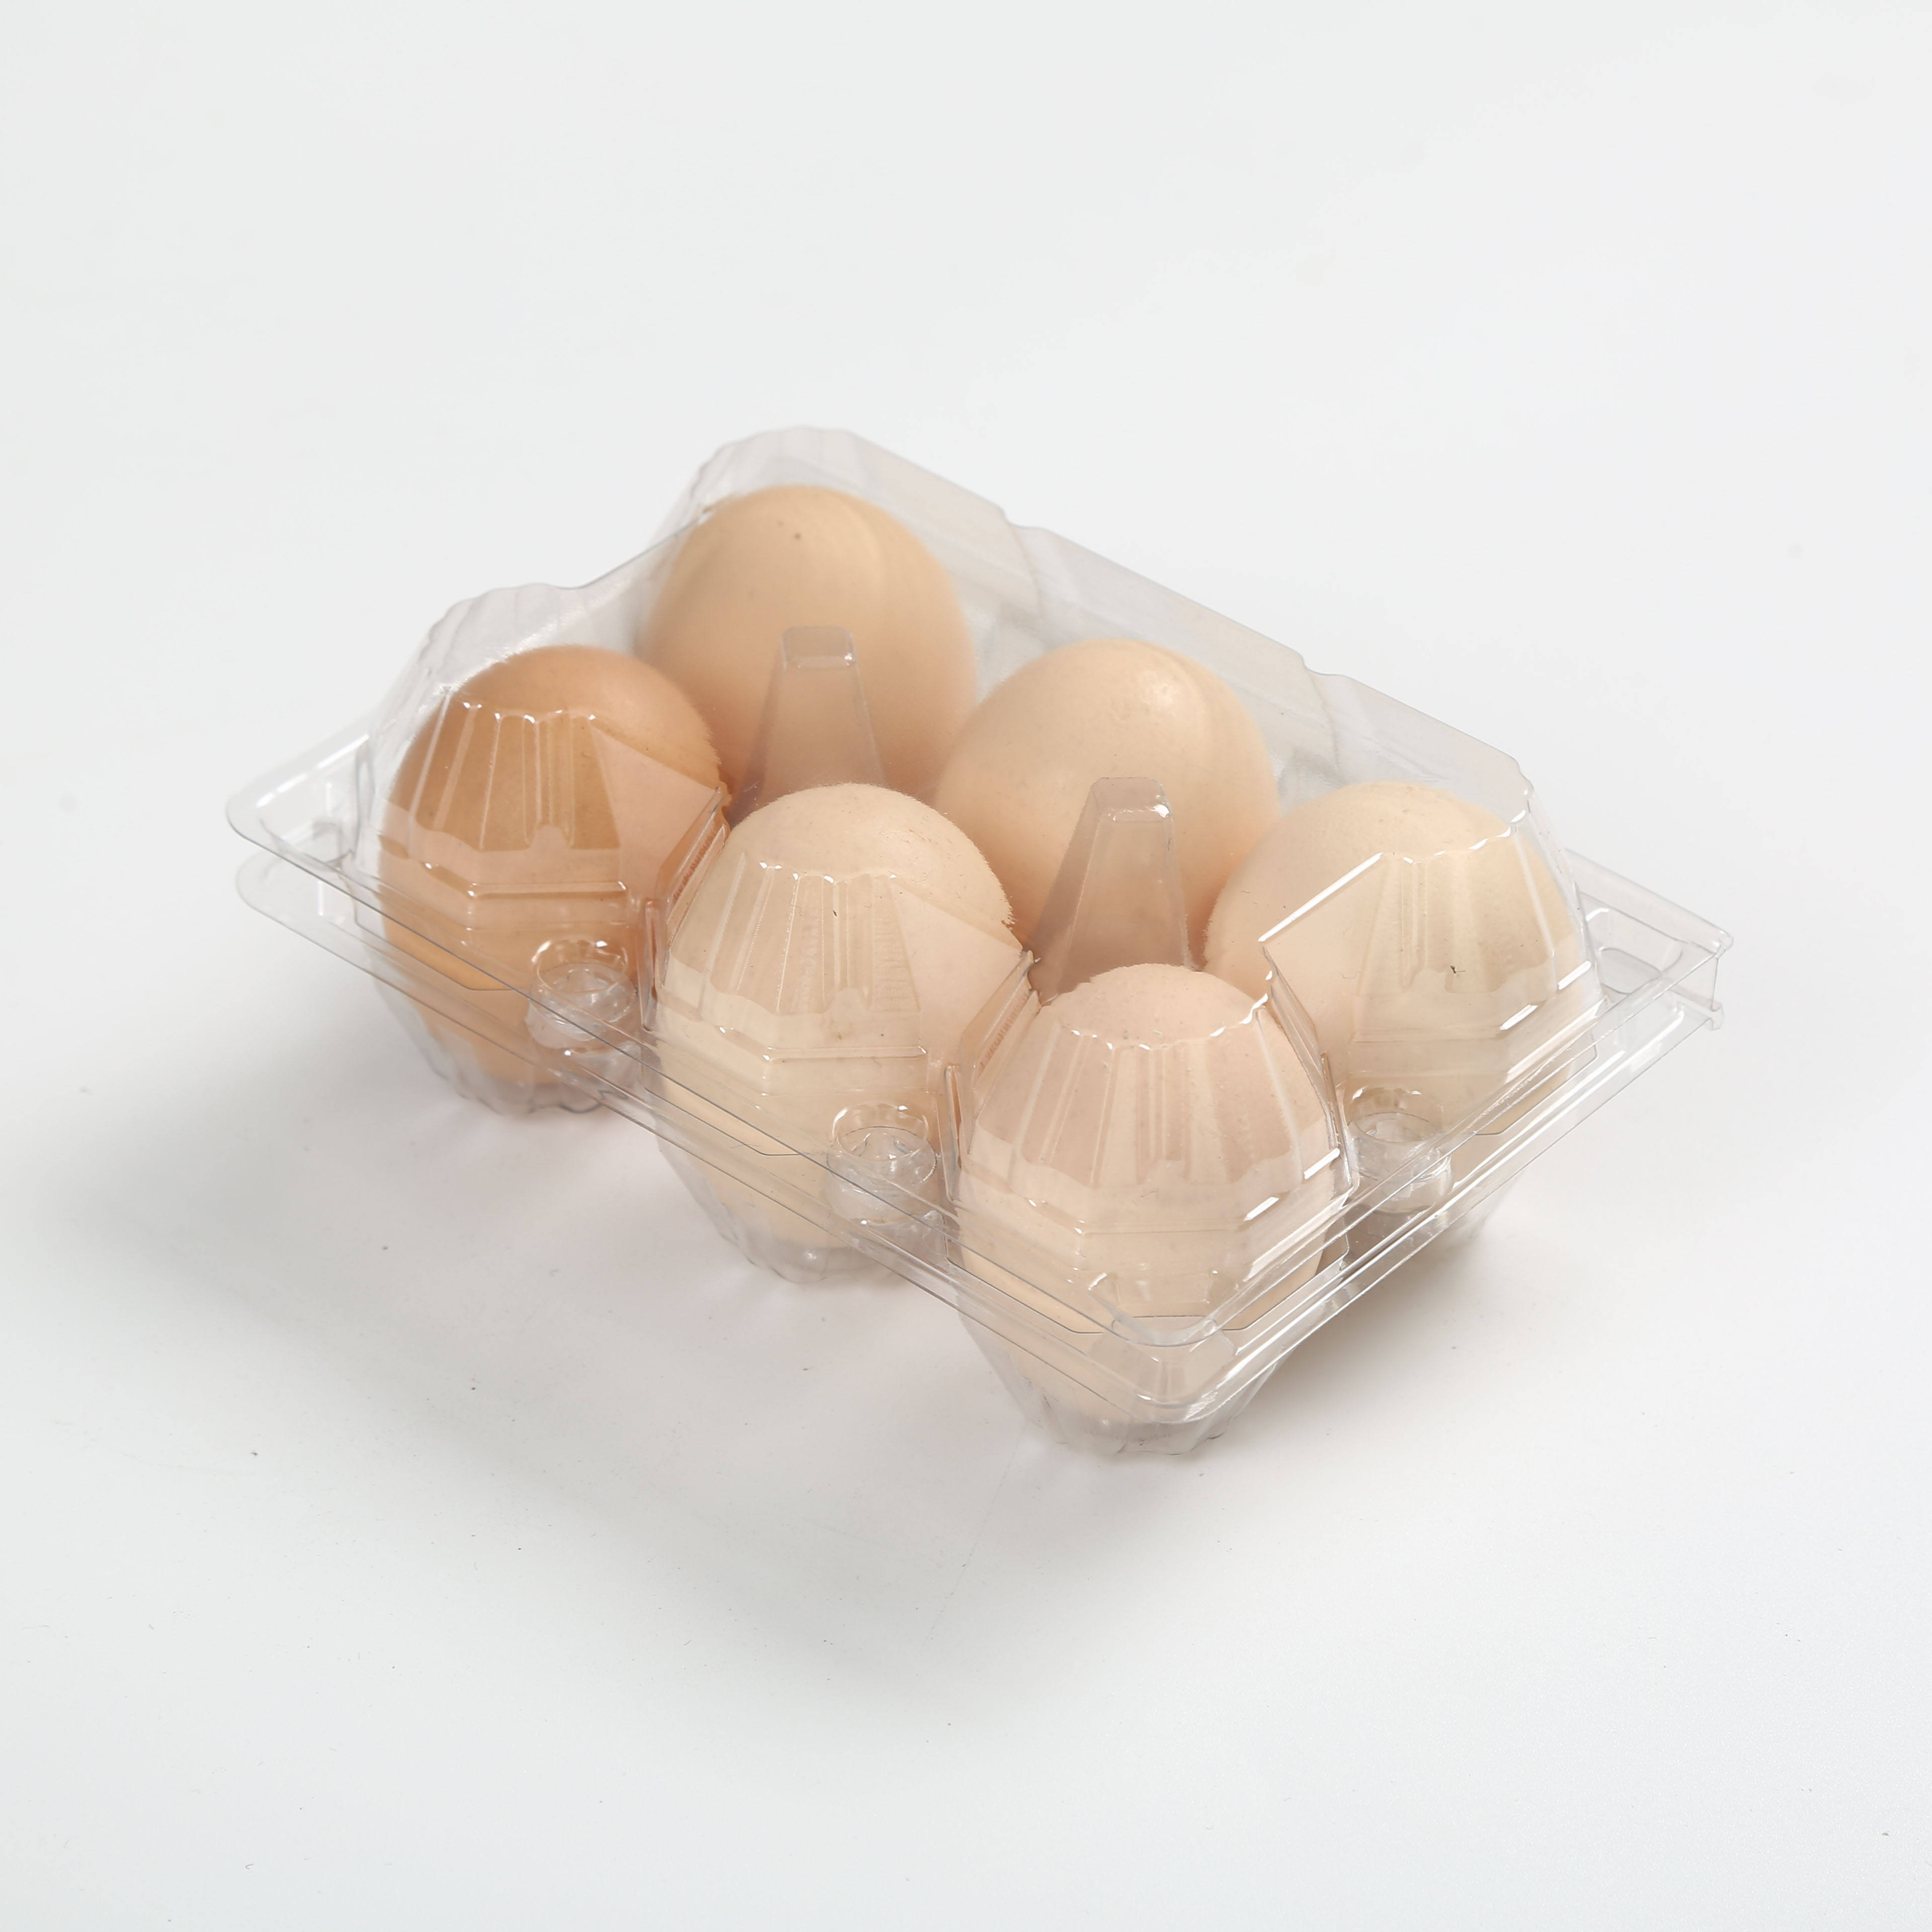 Desechable barato Blister Clamshell <span class=keywords><strong>embalaje</strong></span> para 6 bandejas <span class=keywords><strong>de</strong></span> huevos